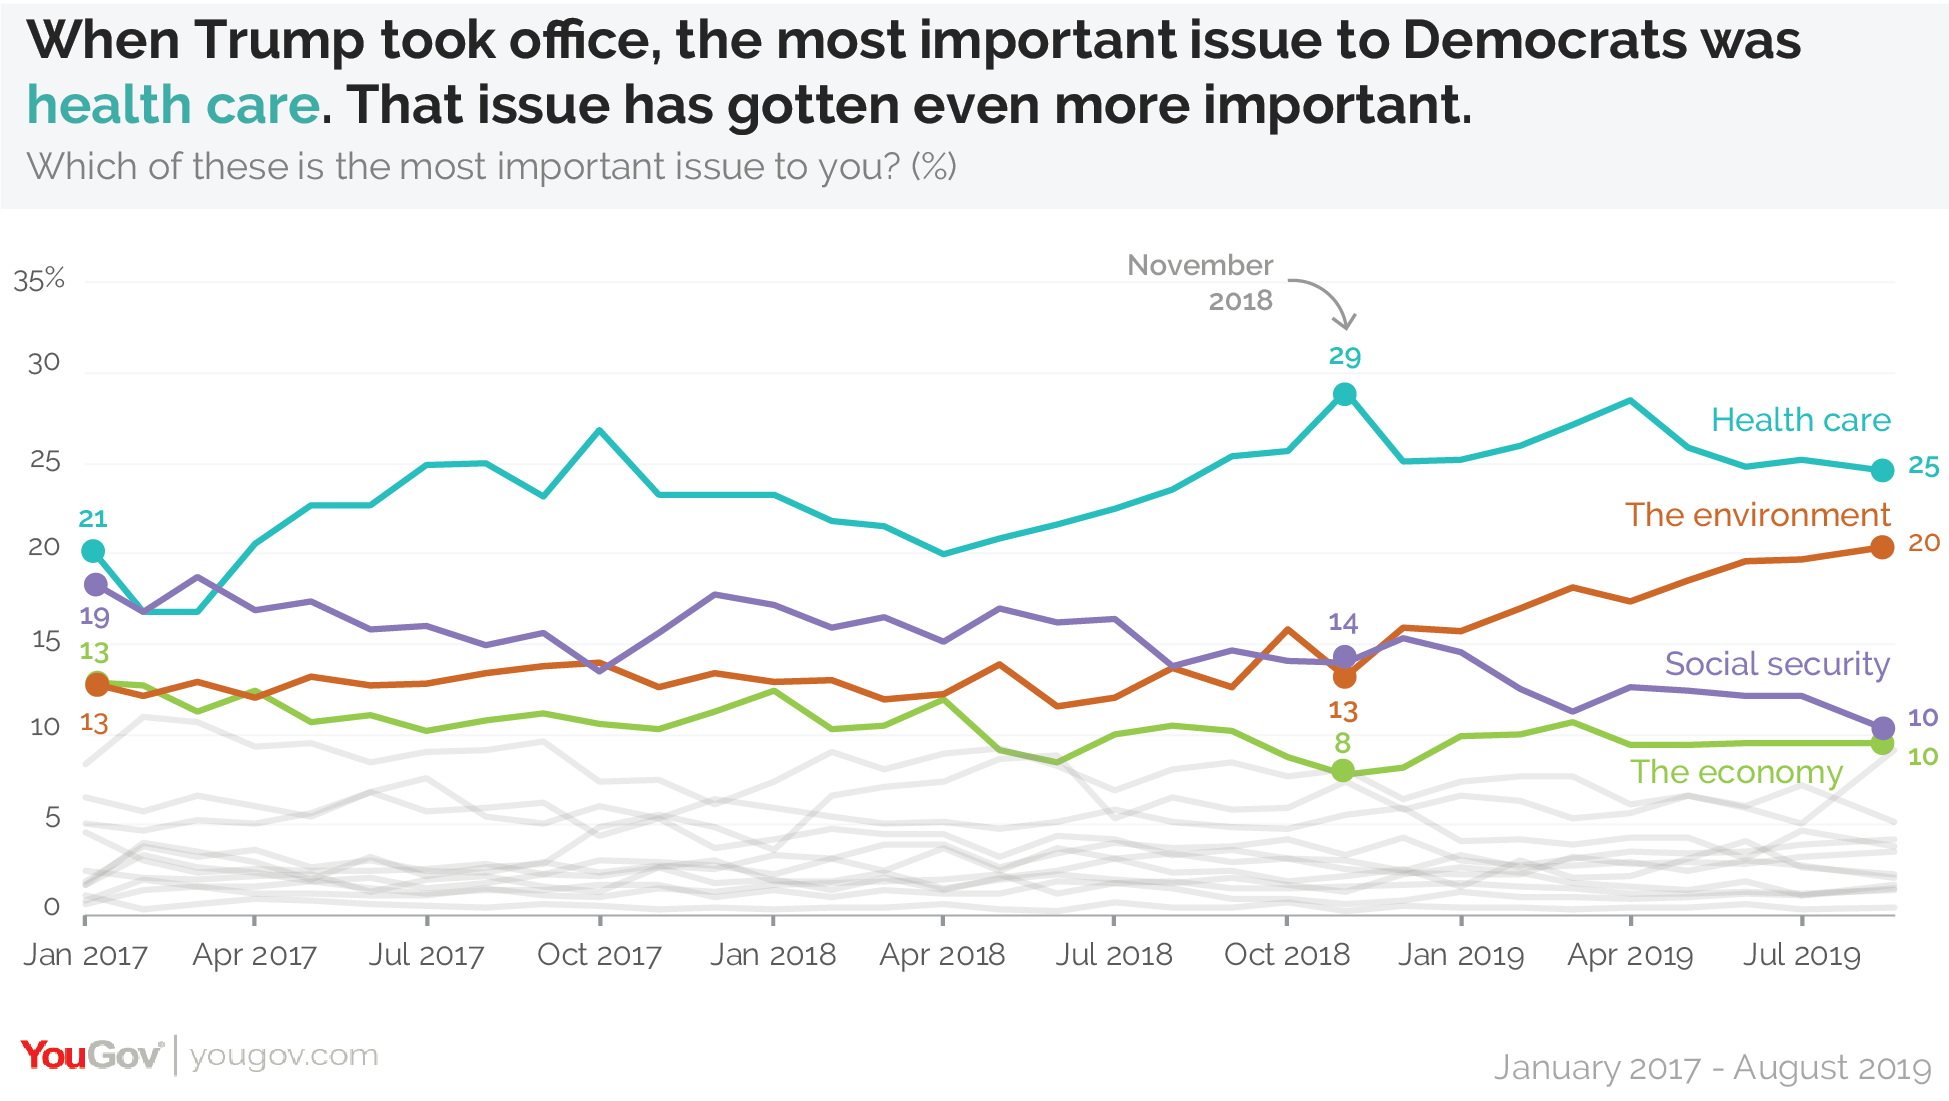 When Donald Trump took office, the most important issue to Democrats was health care. That issue has gotten even more important.